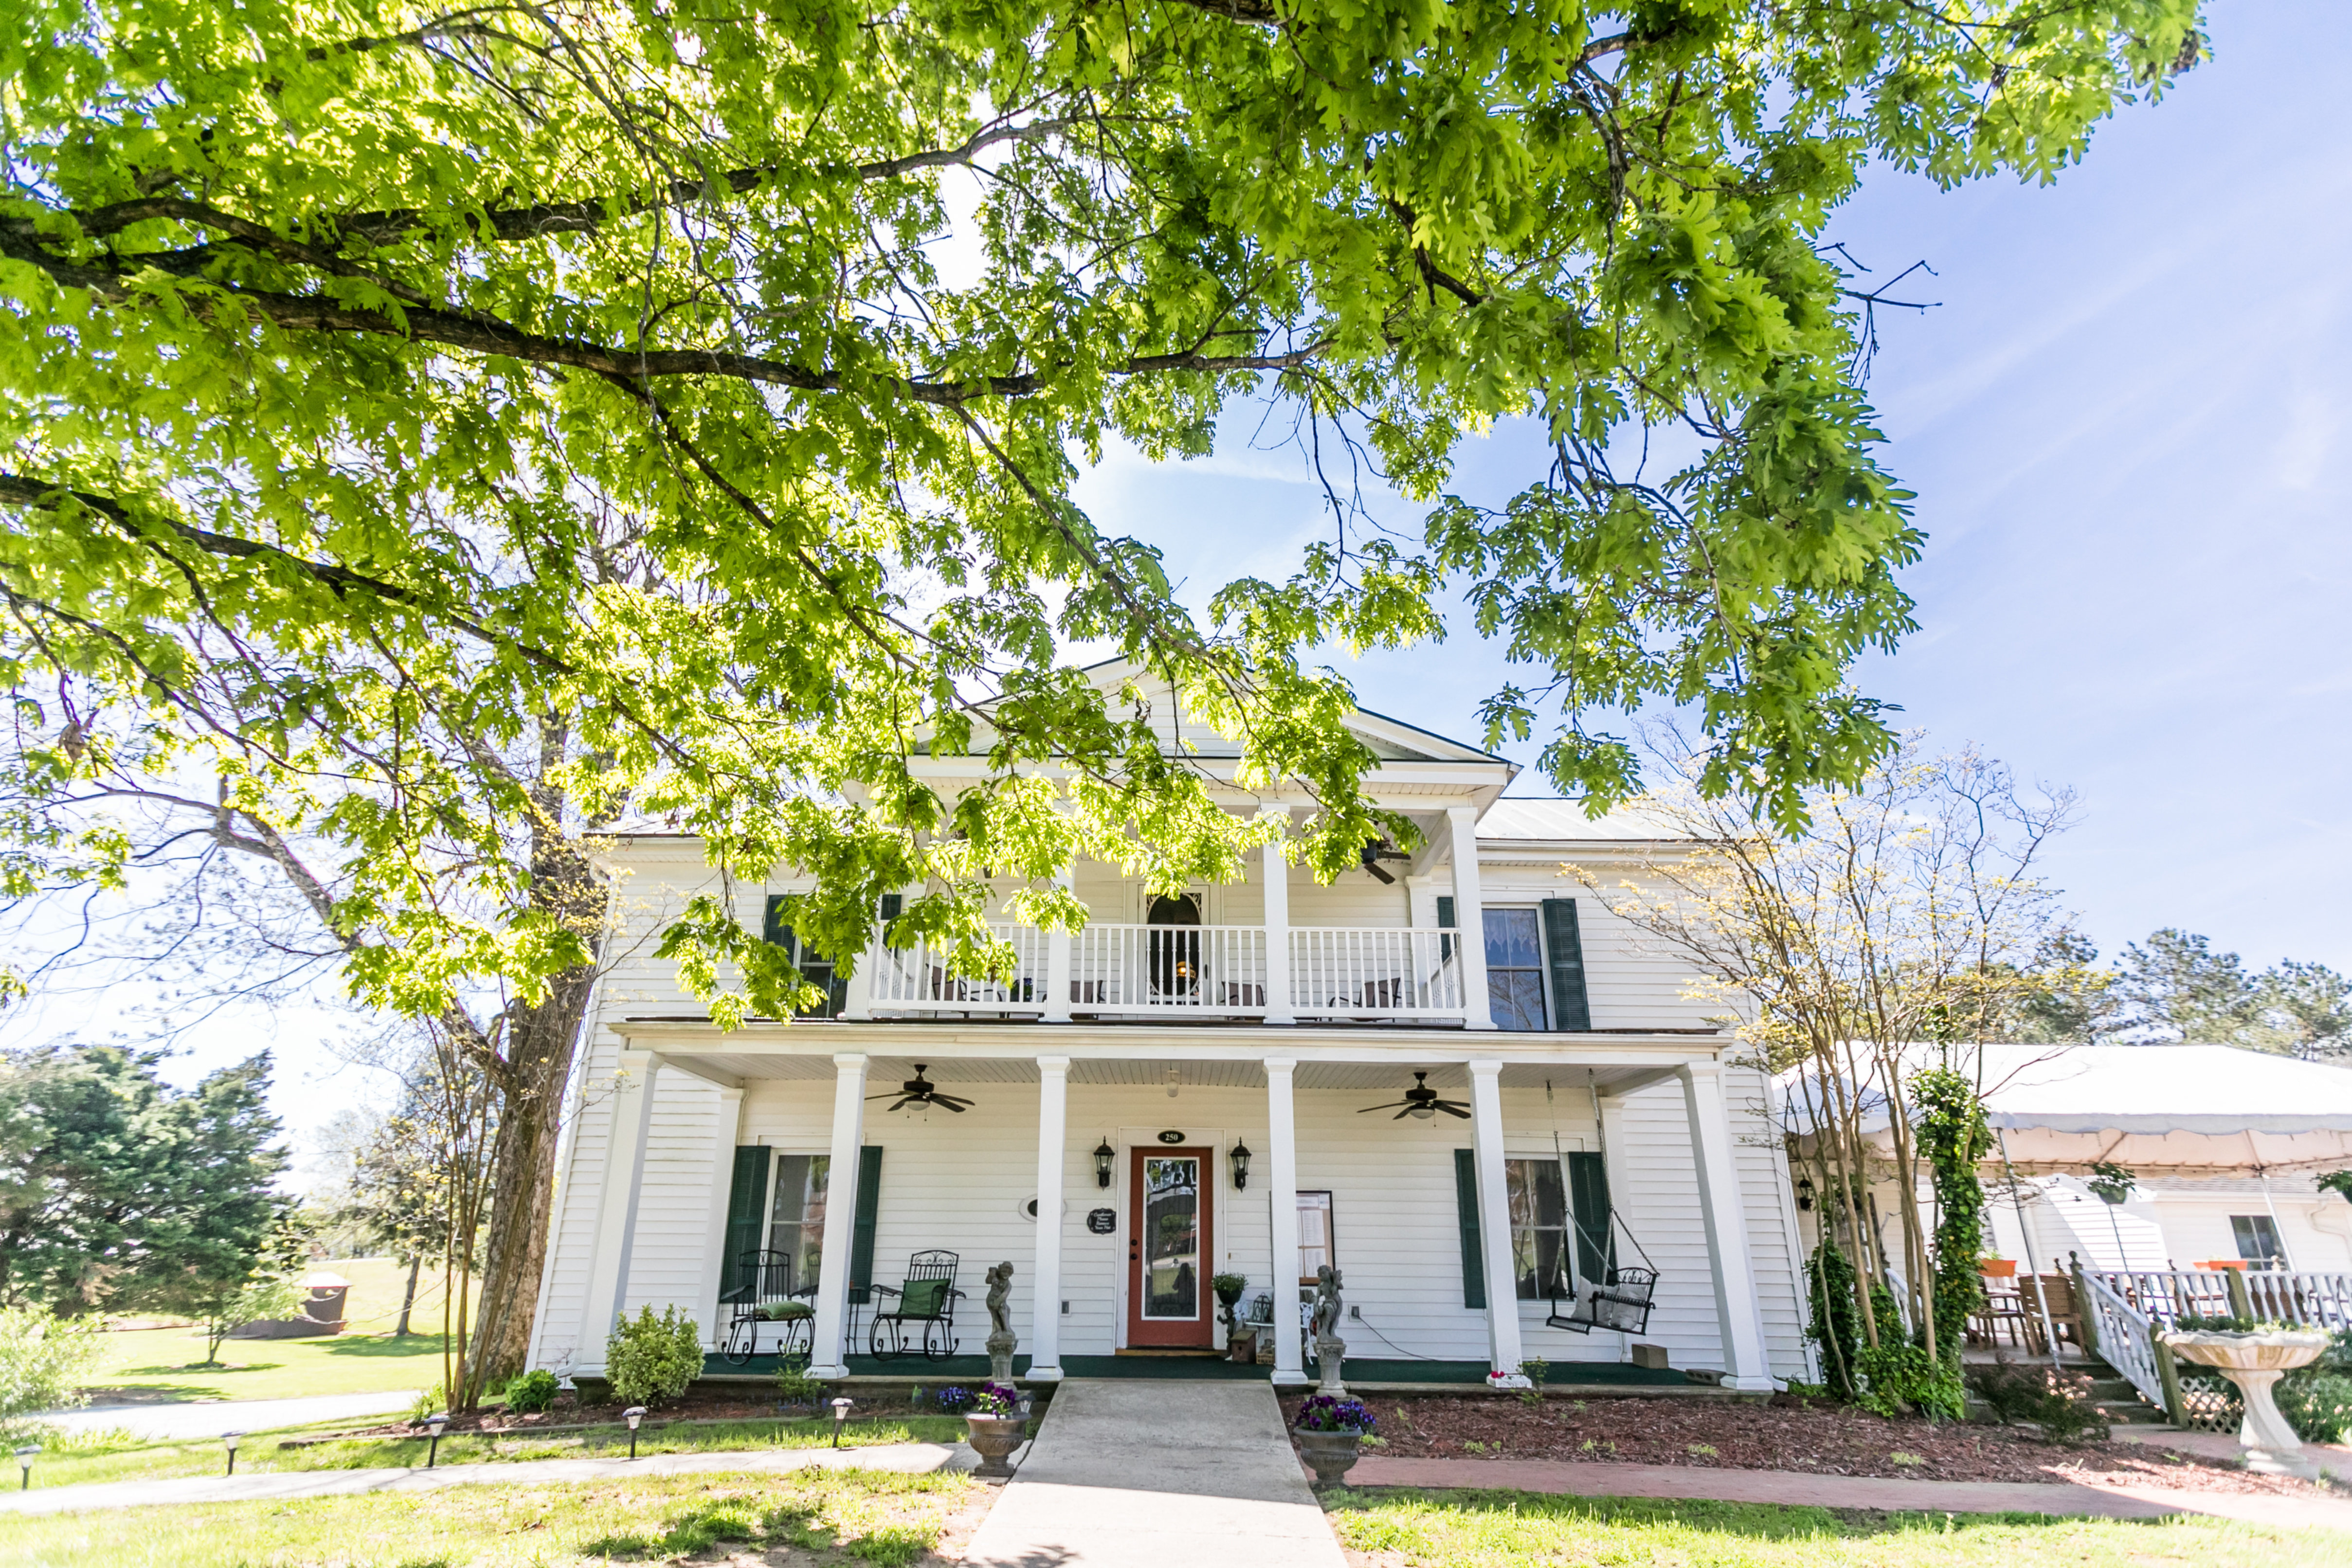 Appomattox Bed and Breakfast